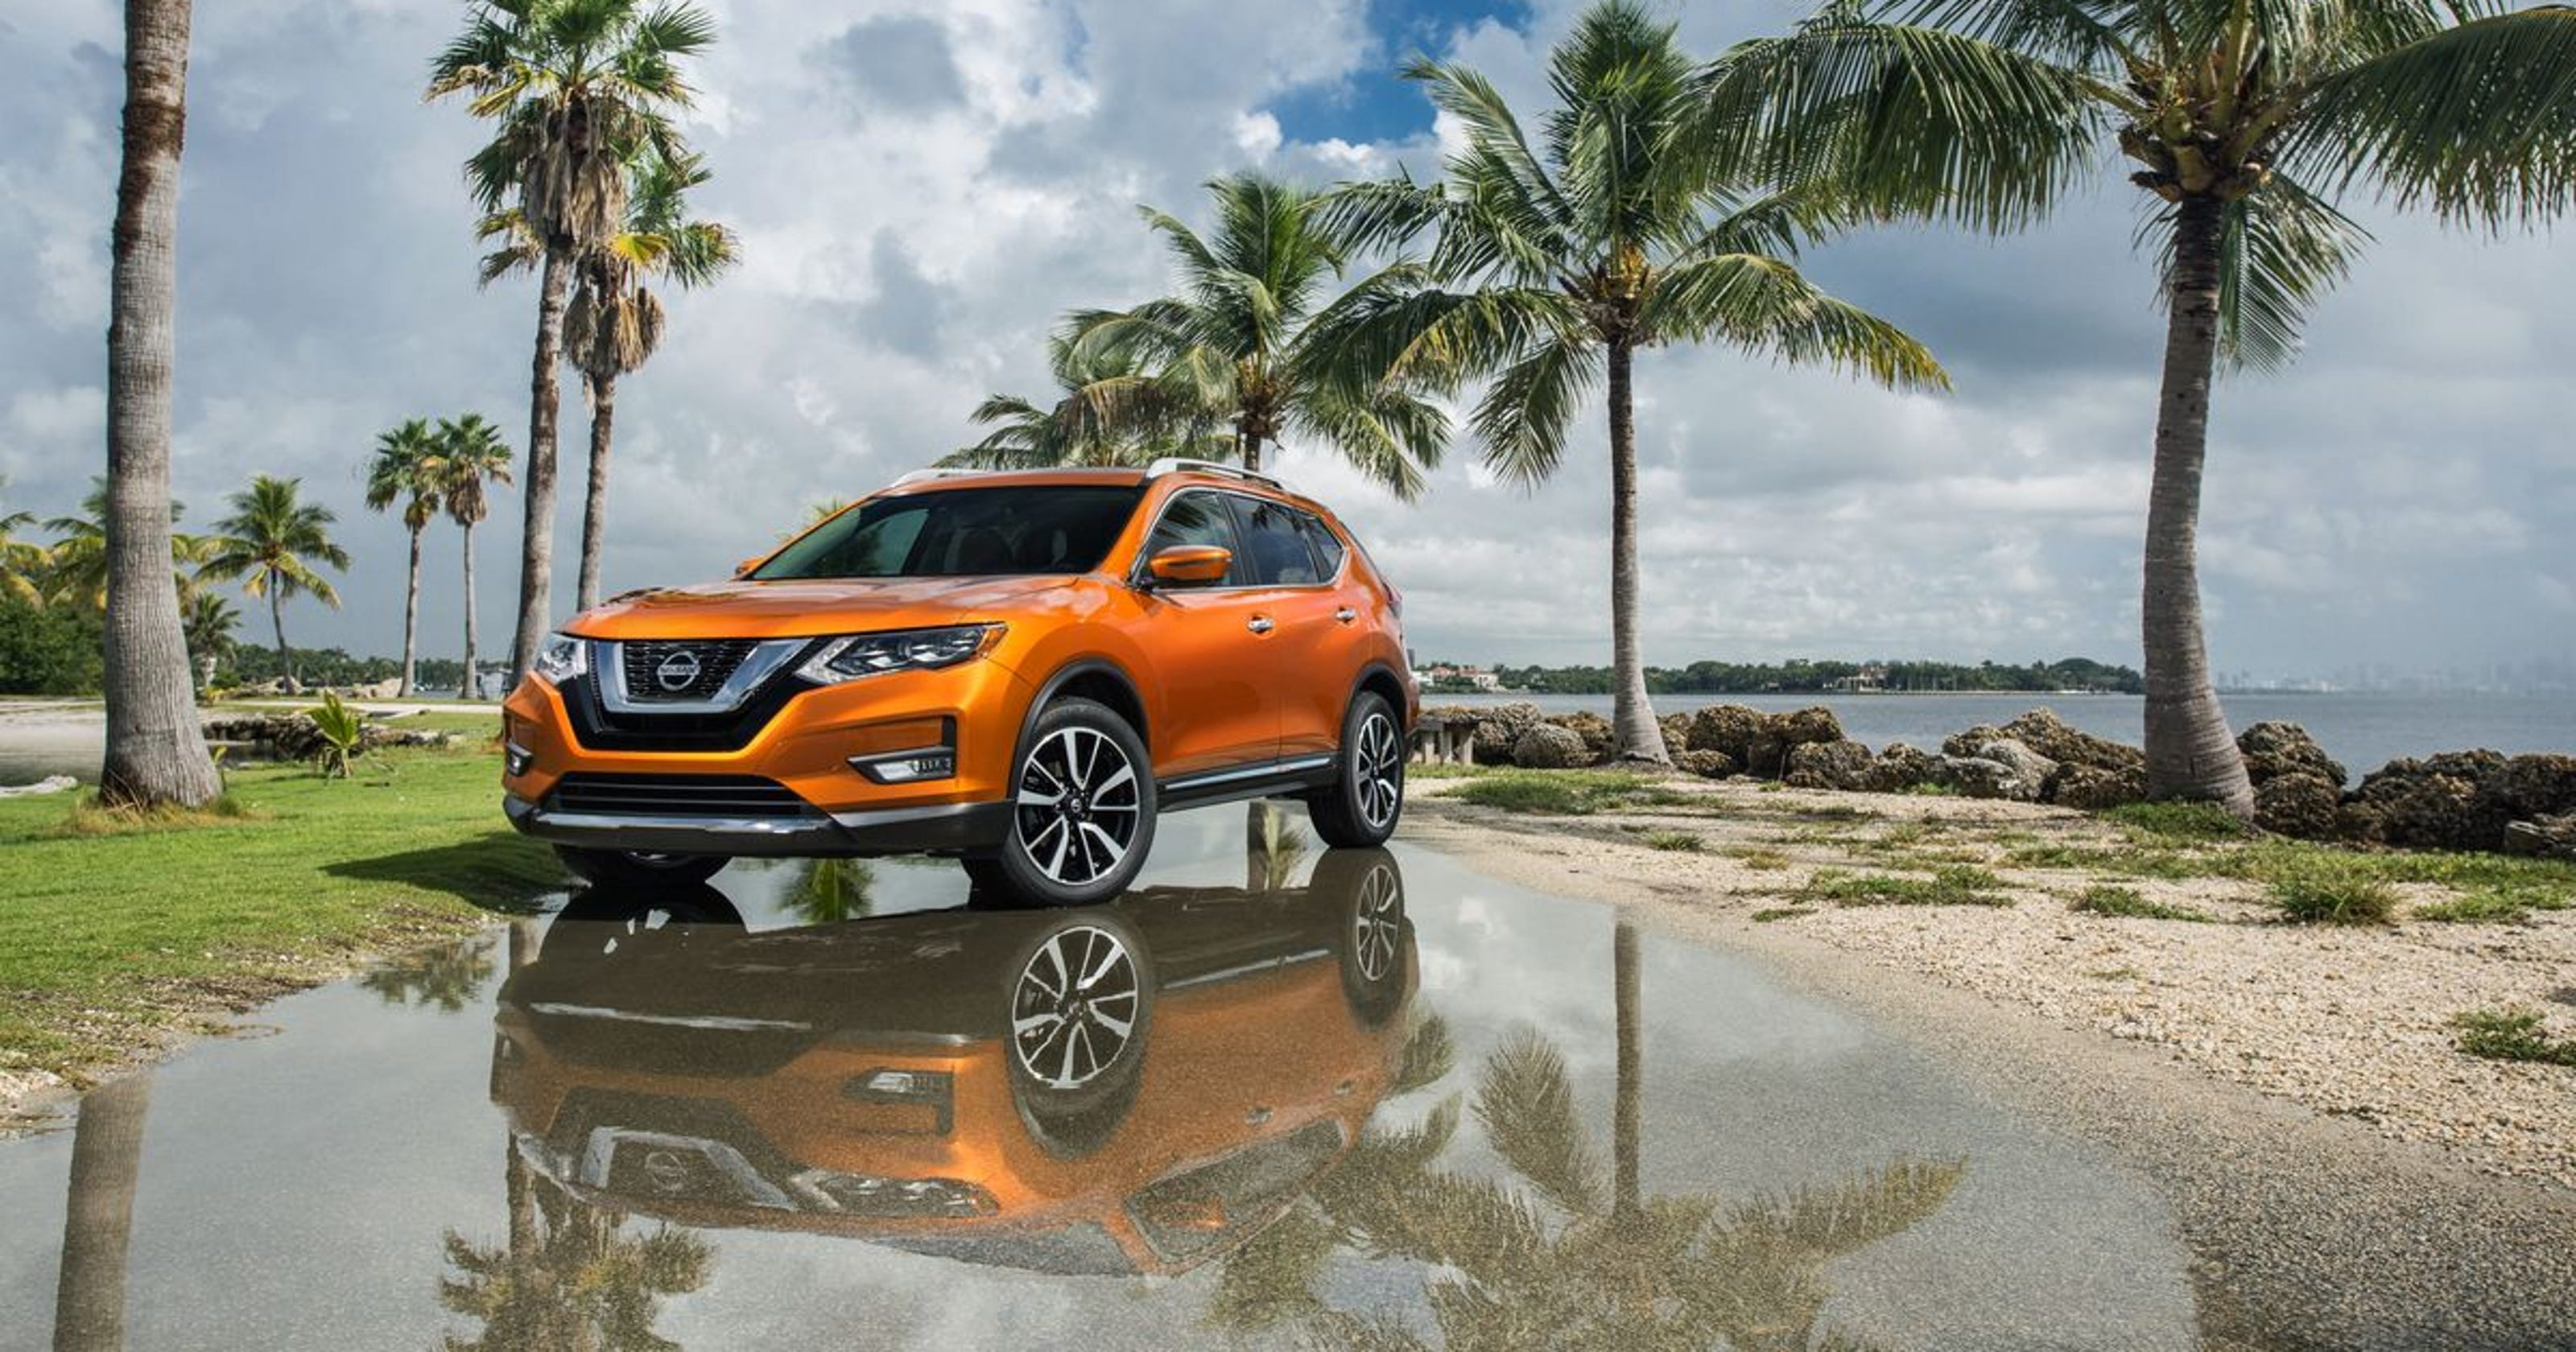 Where Is Nissan Made >> How Nissan Rogue Became The Hottest Suv In The Empire